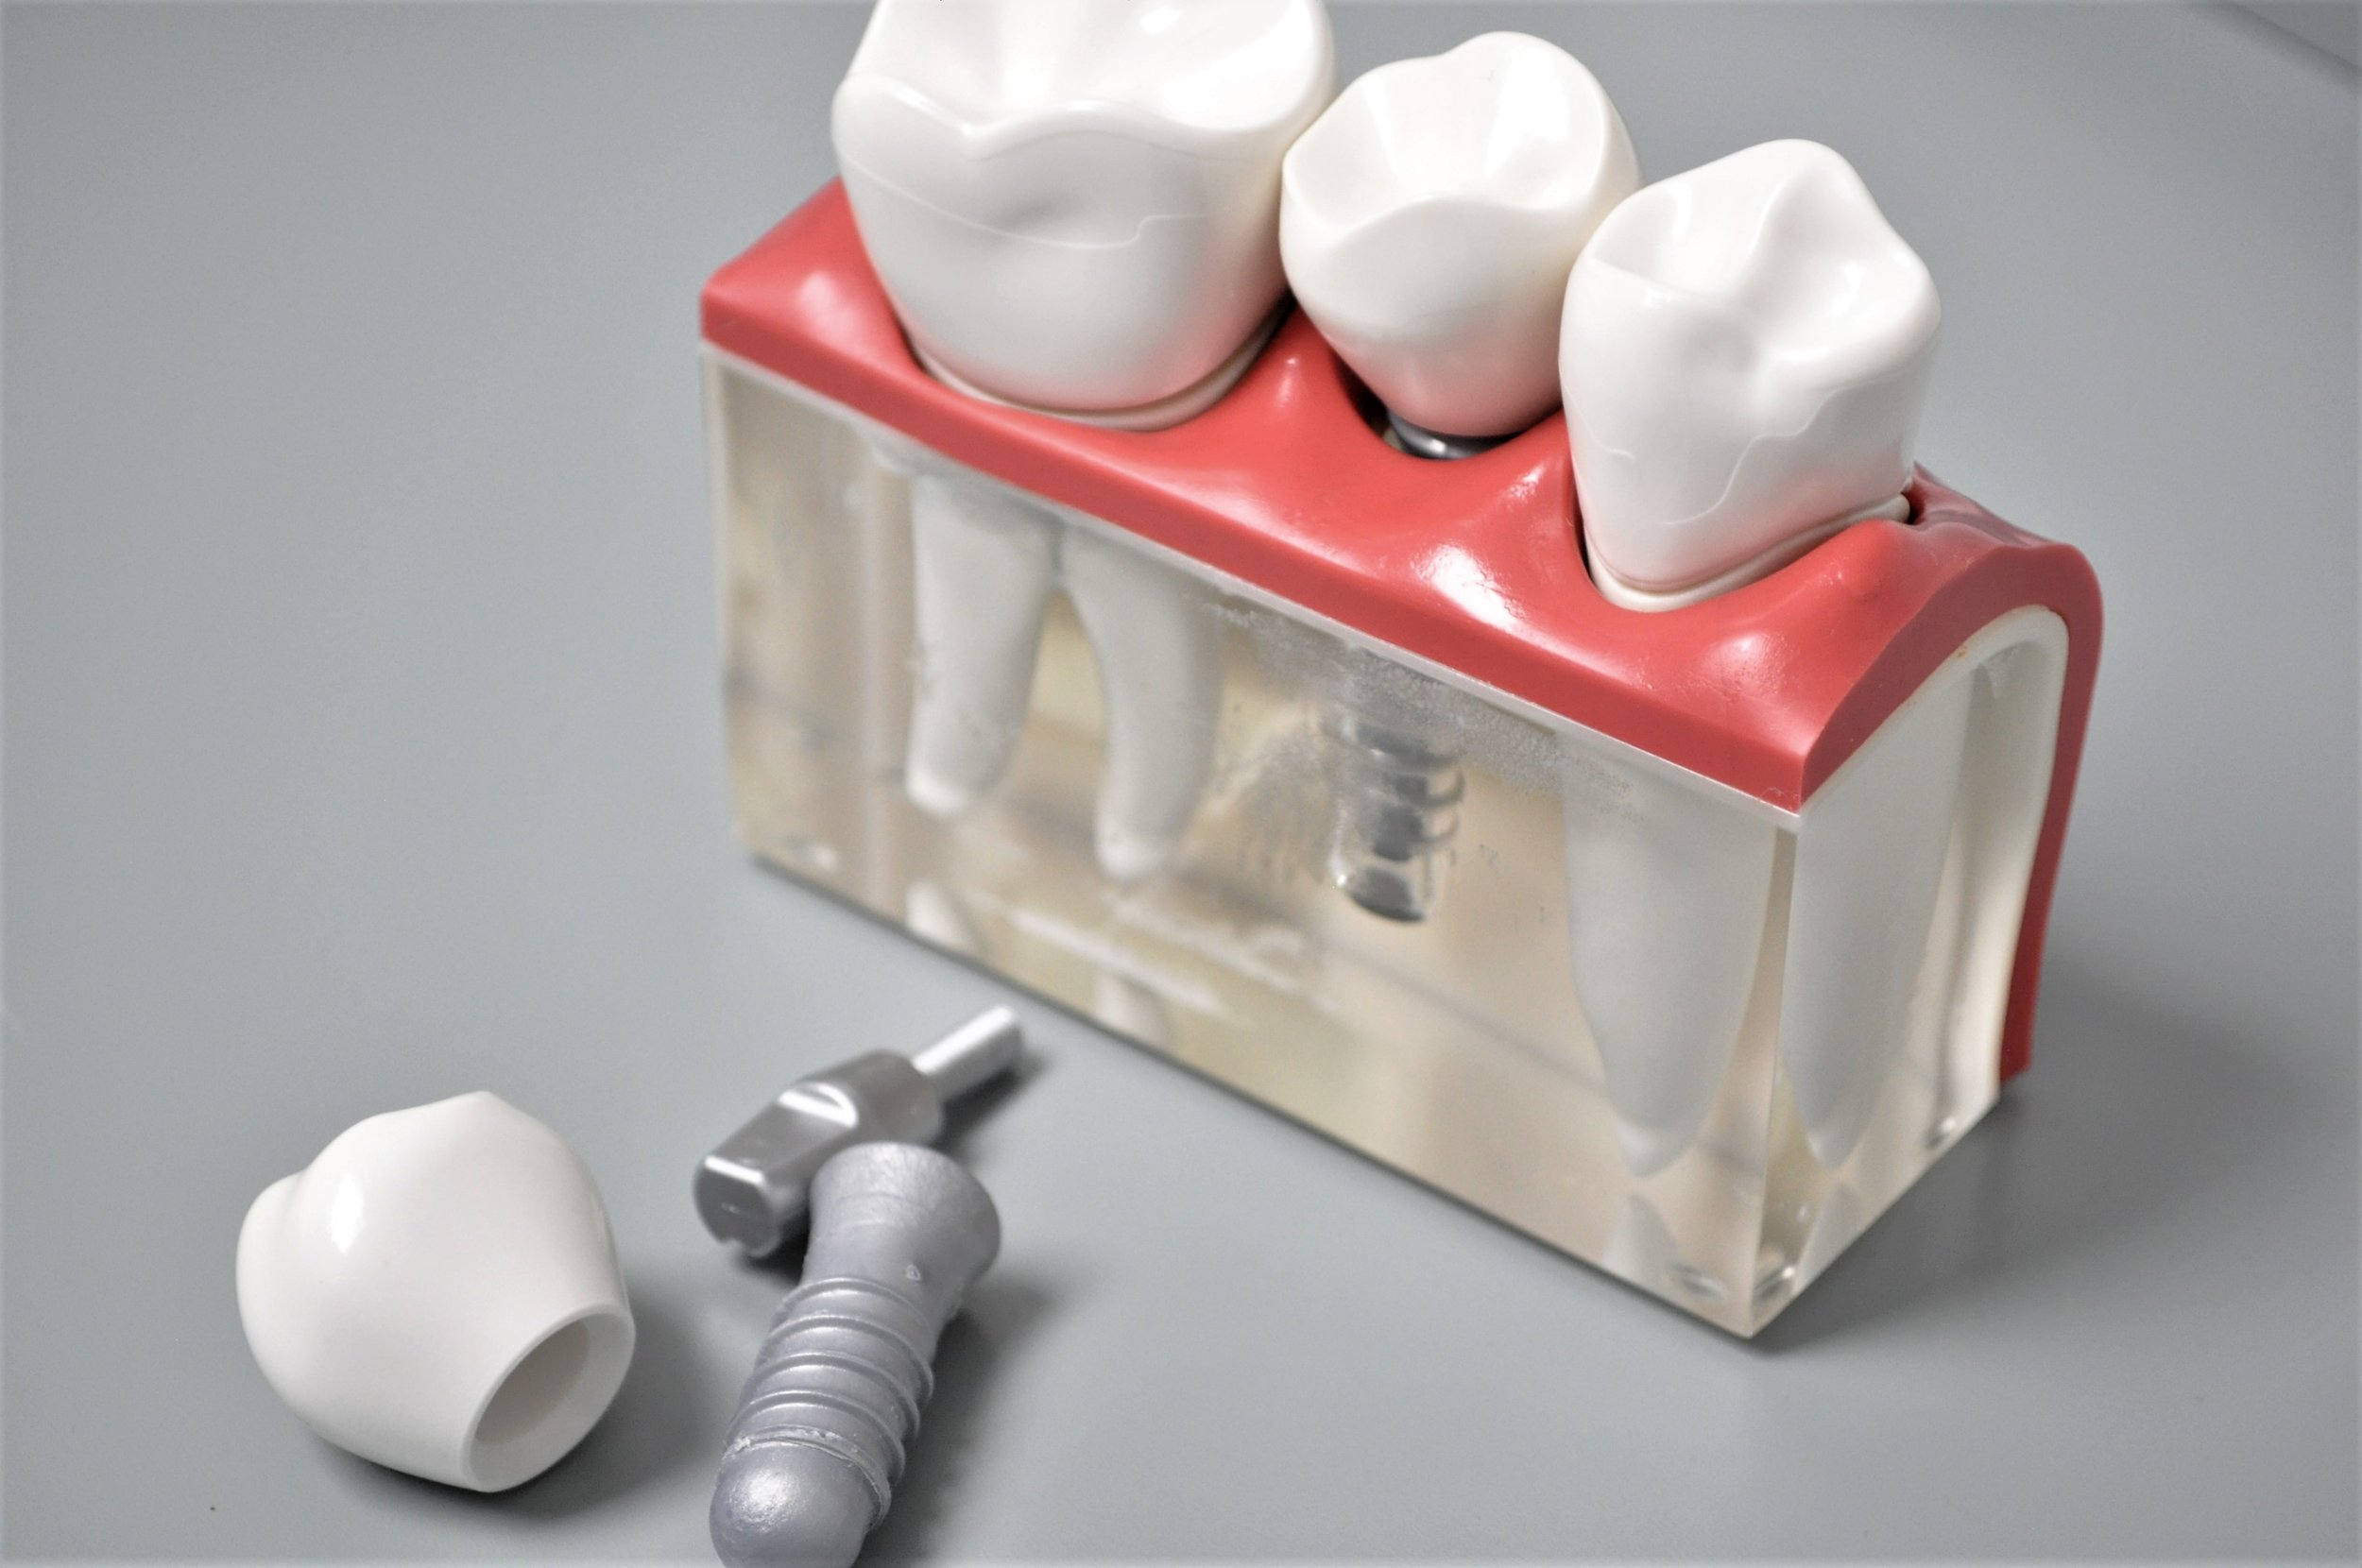 Most of us take teeth for granted, but they are so much more than just tools for eating. -